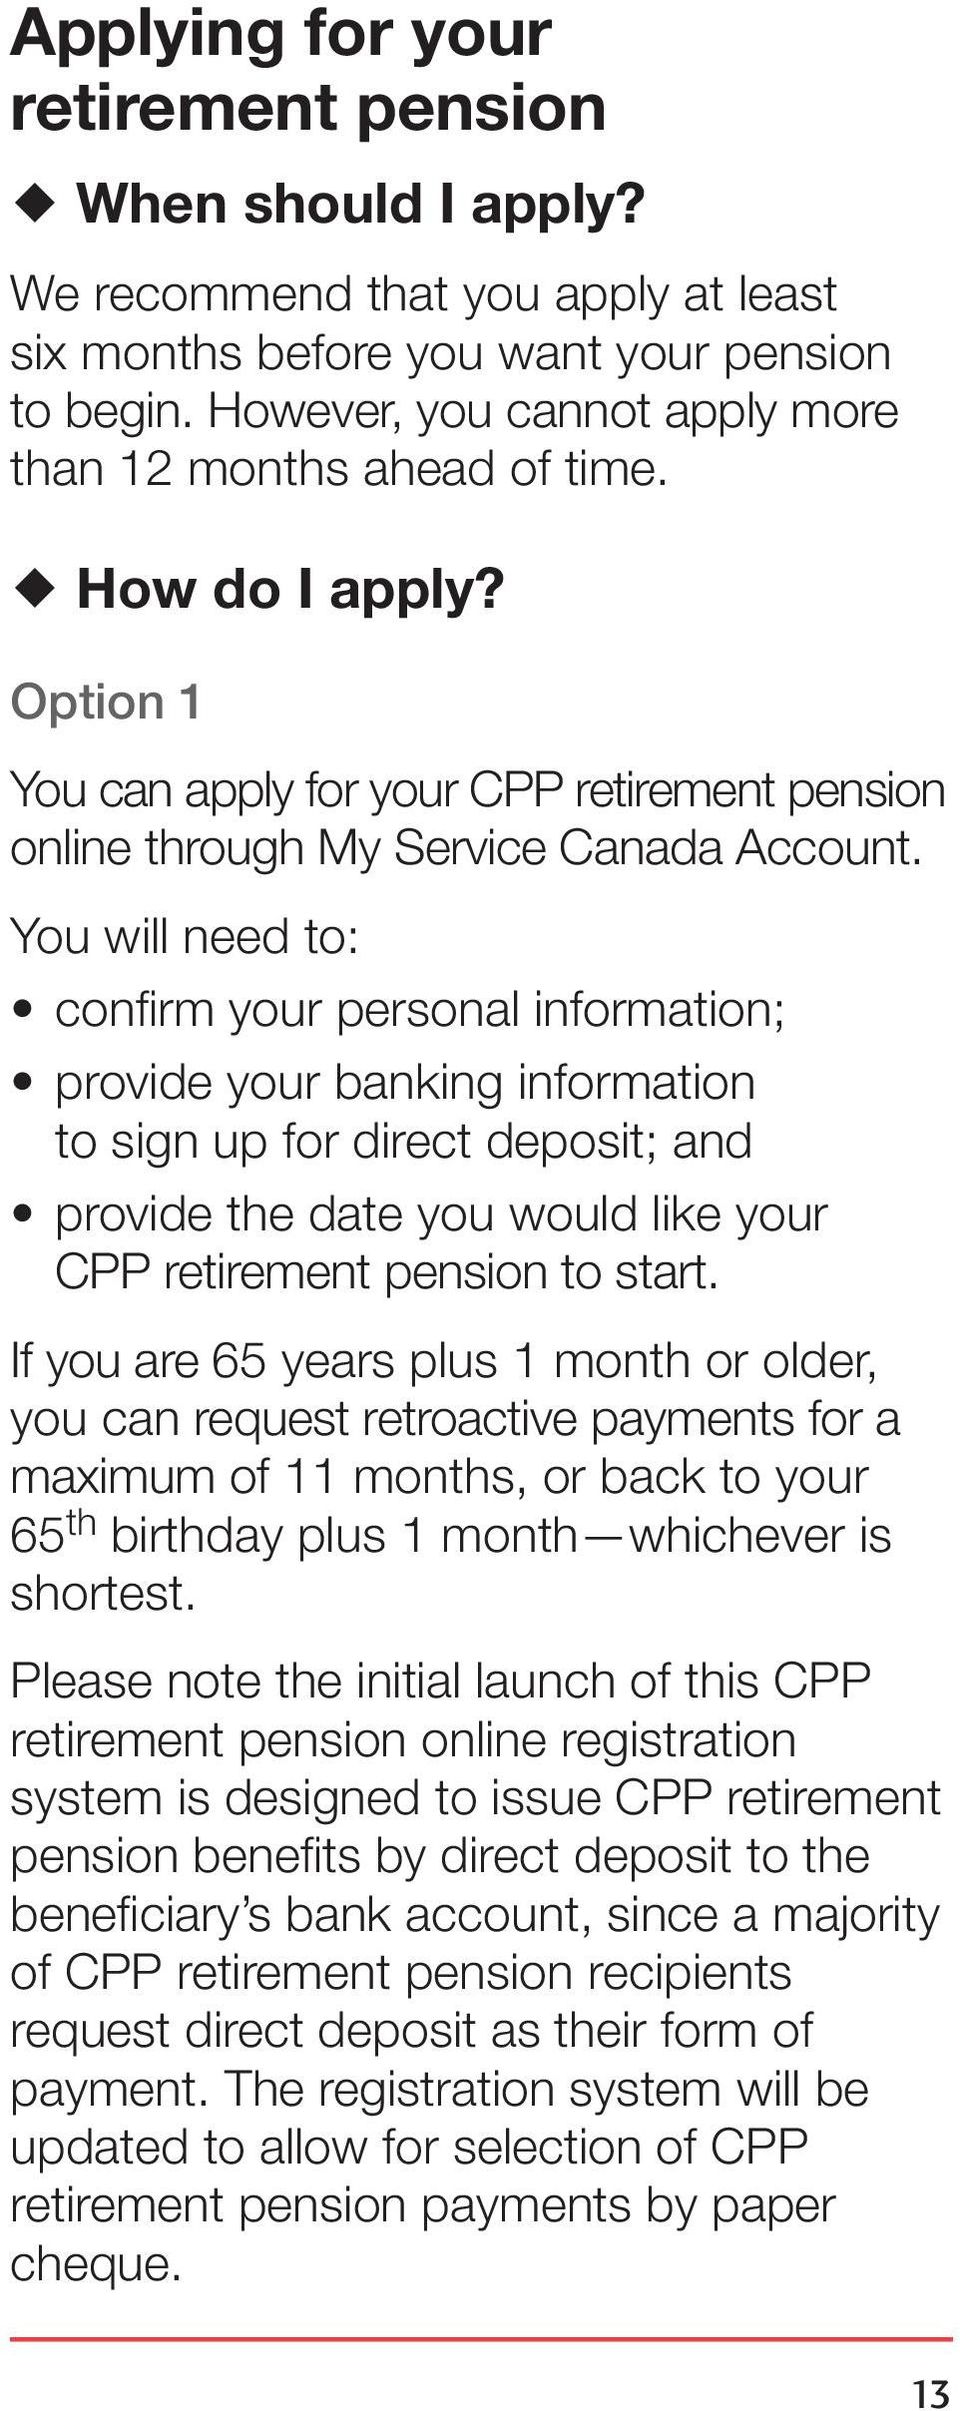 You will need to: confirm your personal information; provide your banking information to sign up for direct deposit; and provide the date you would like your CPP retirement pension to start.